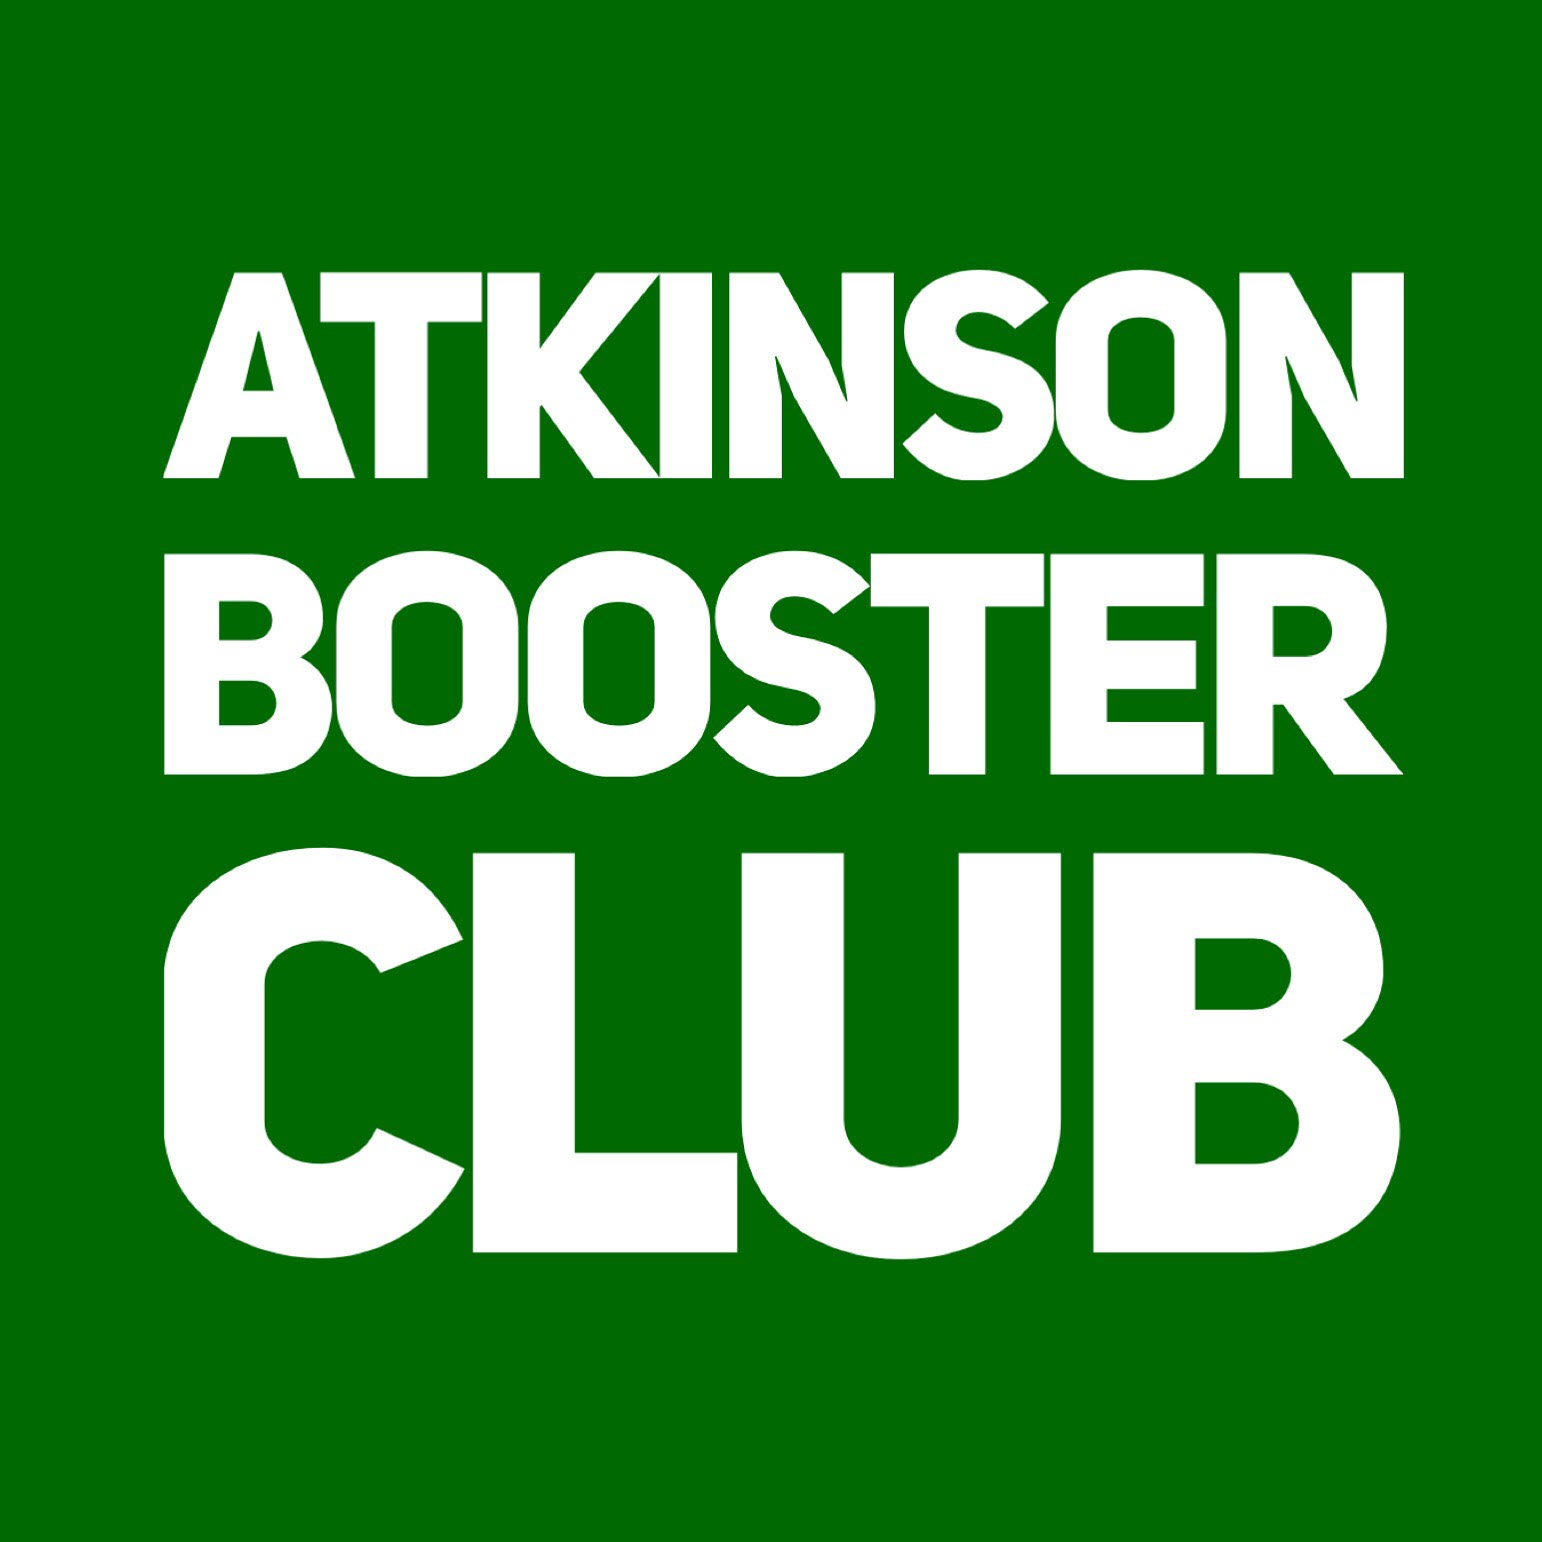 Atkinson Booster Club